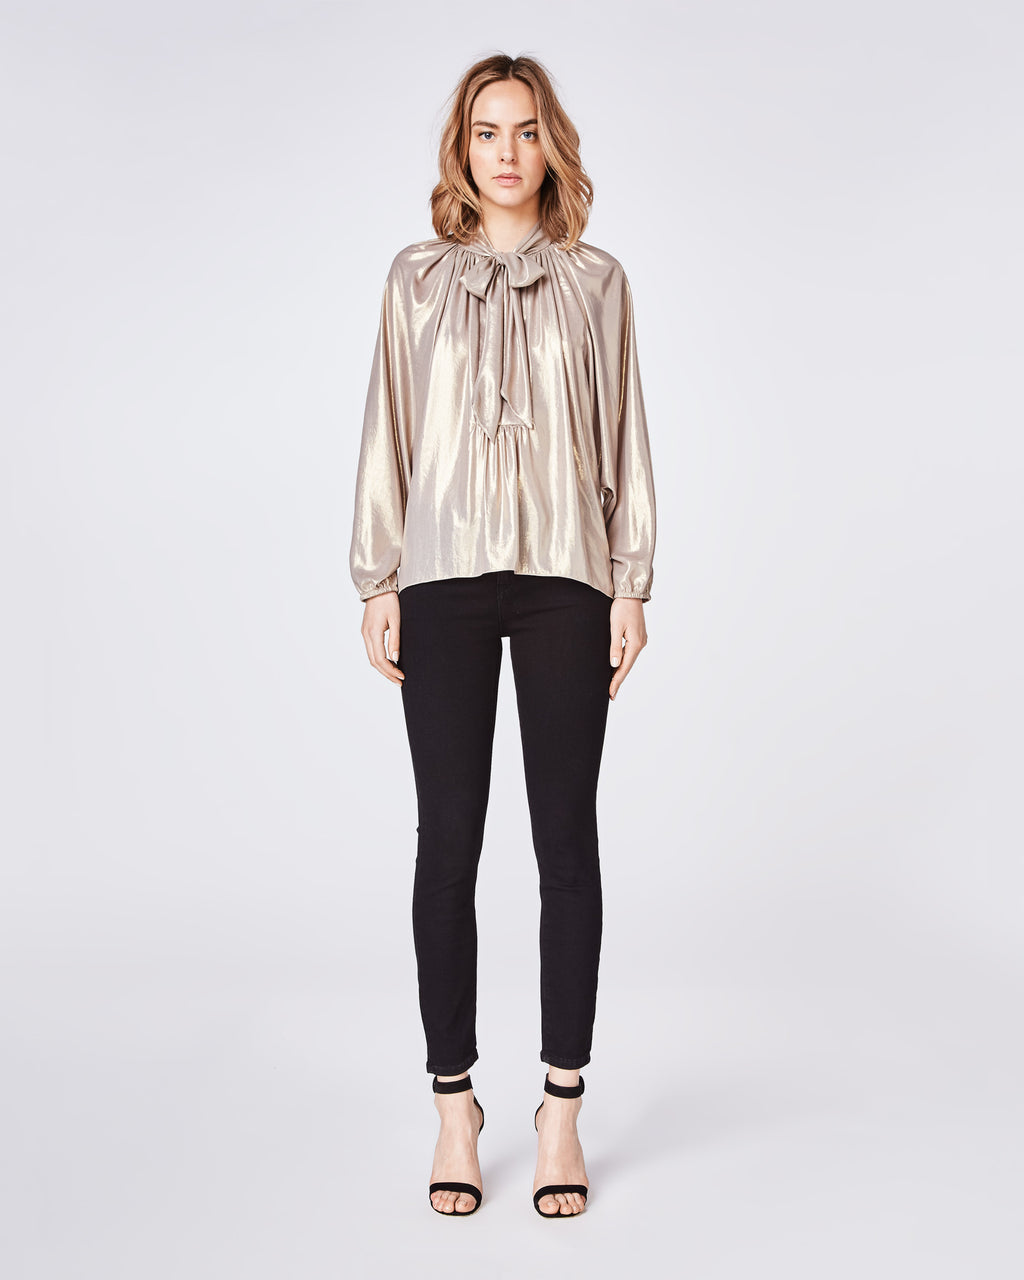 BK10269 - METALLIC FOIL TIE BLOUSE - tops - blouses - A feminine style, but add the gold metallic fabric on this long-sleeve blouse for a downtown vibe. This lightweight blouse features a neck bow tie at the neckline and a dolman style sleeve.